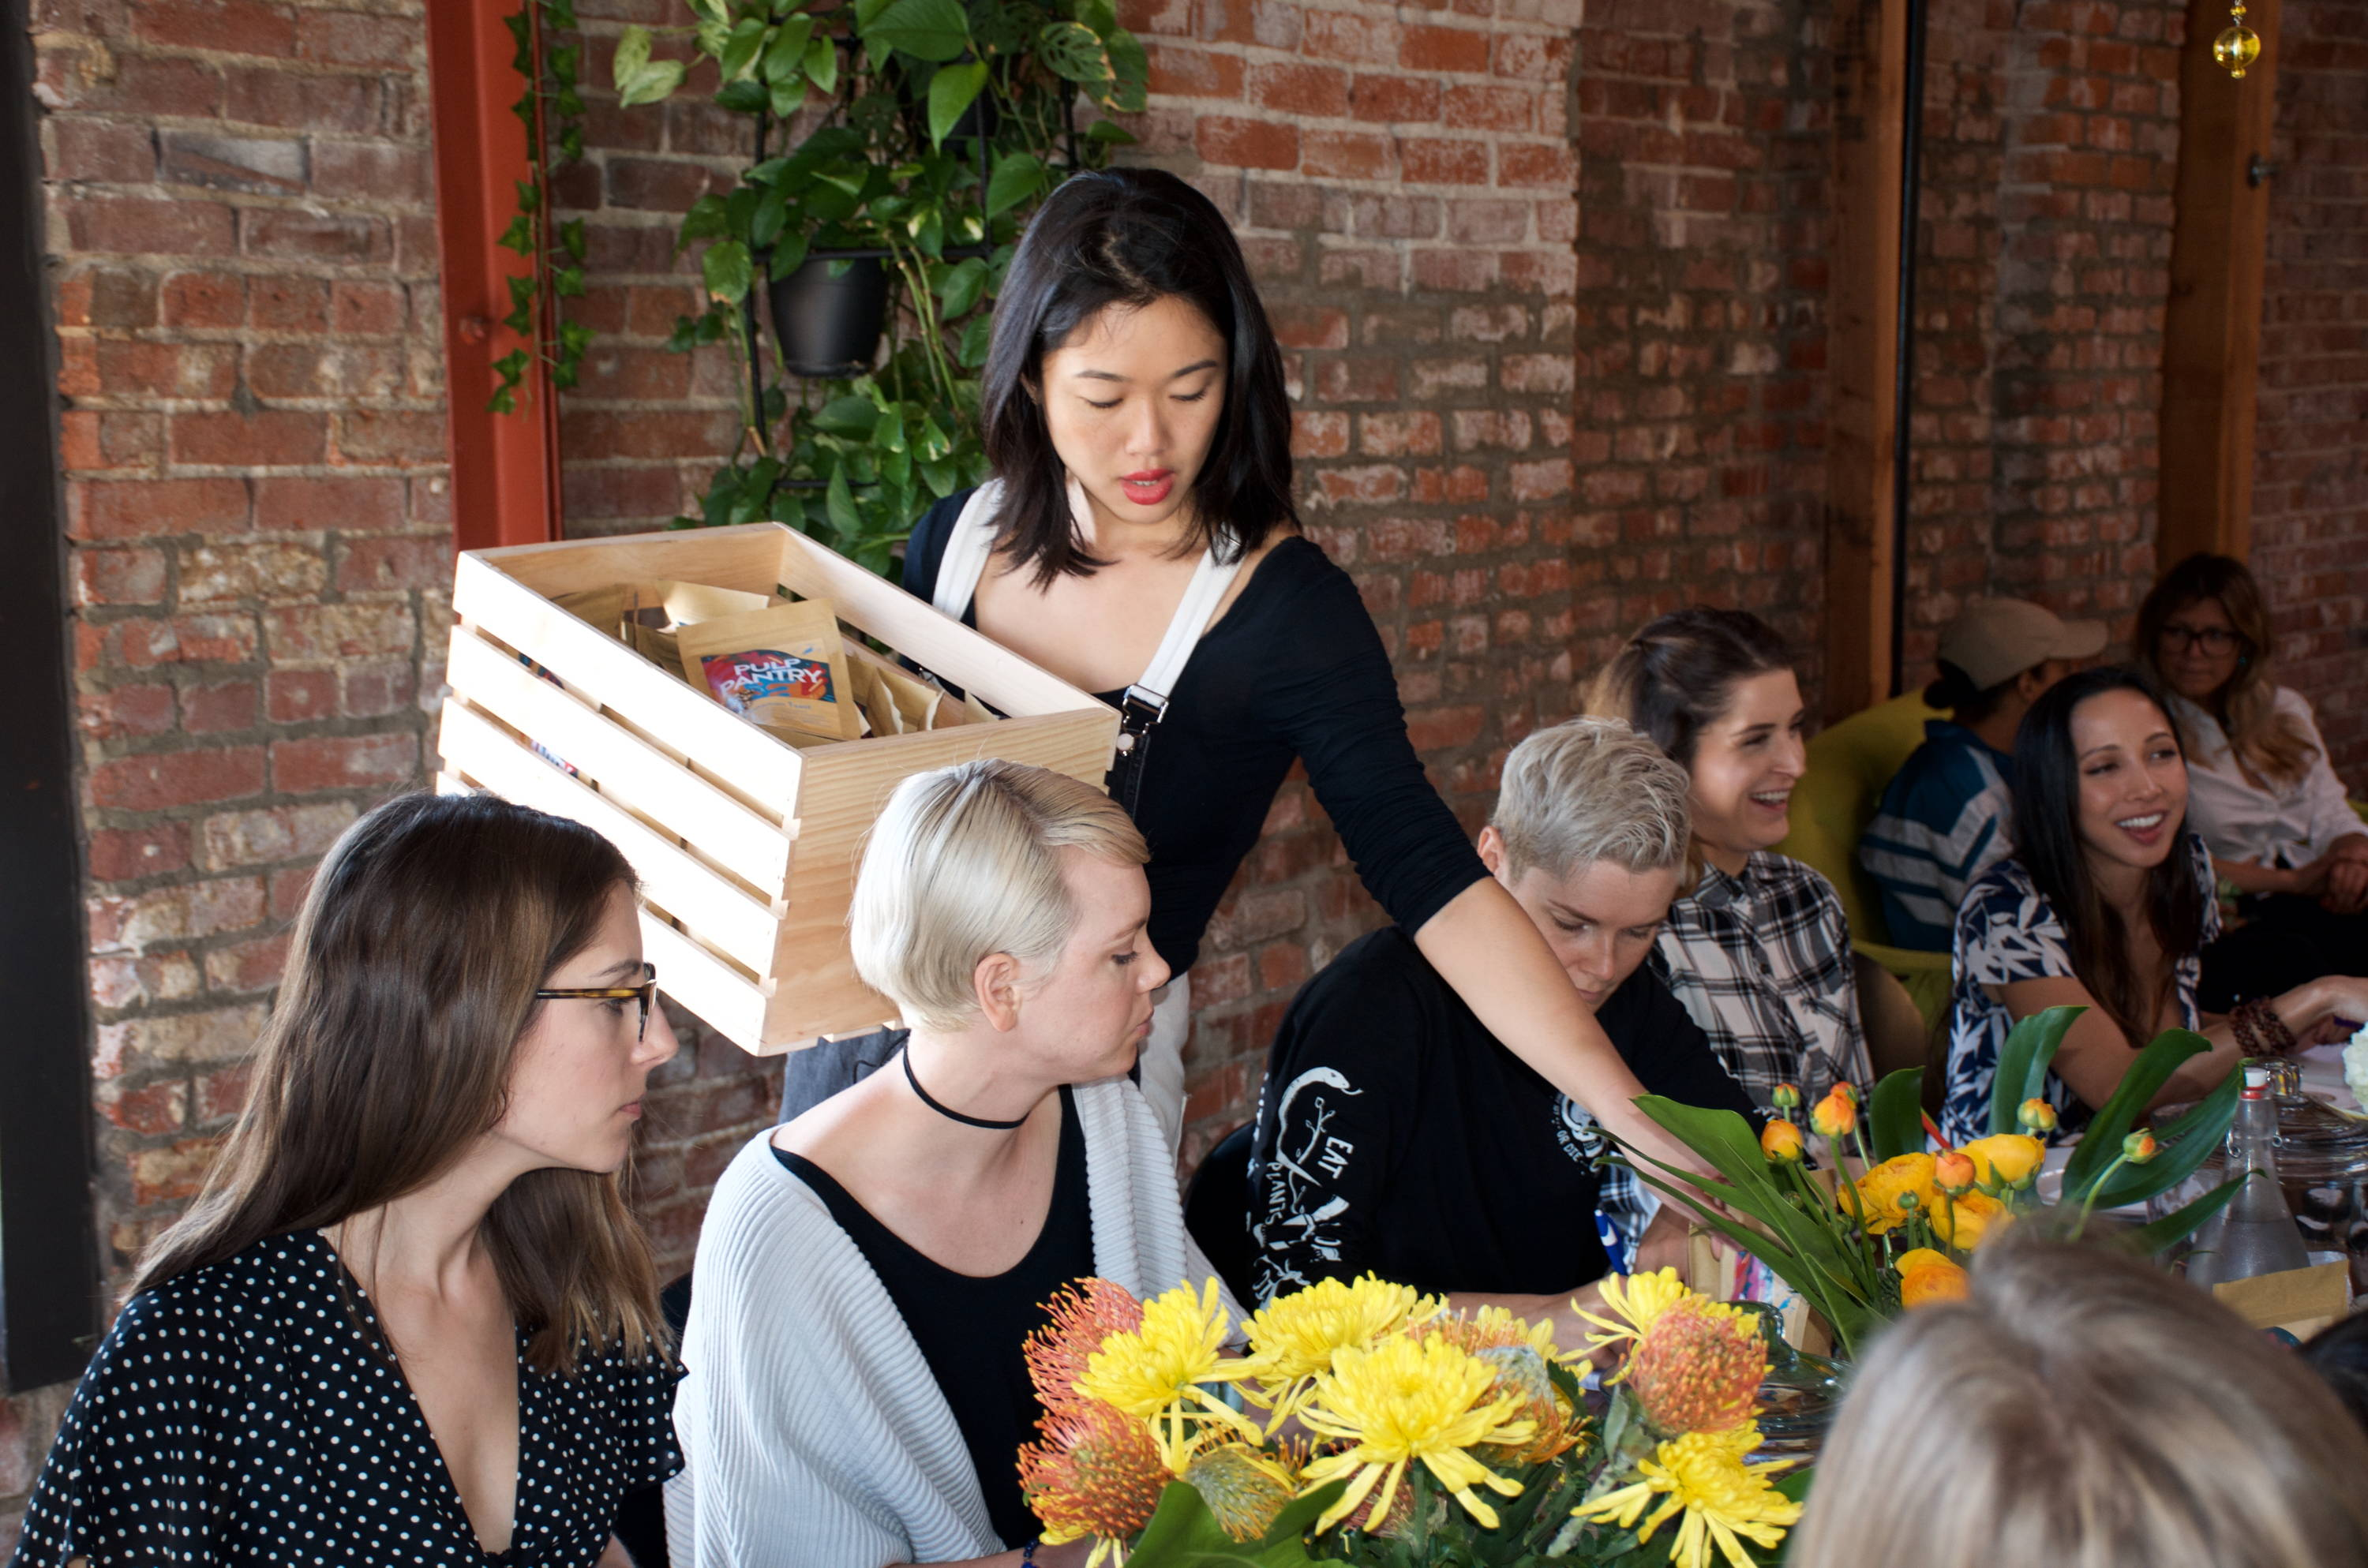 Pulp Pantry co-founder, Ashley Miyasaki at vegan brunch